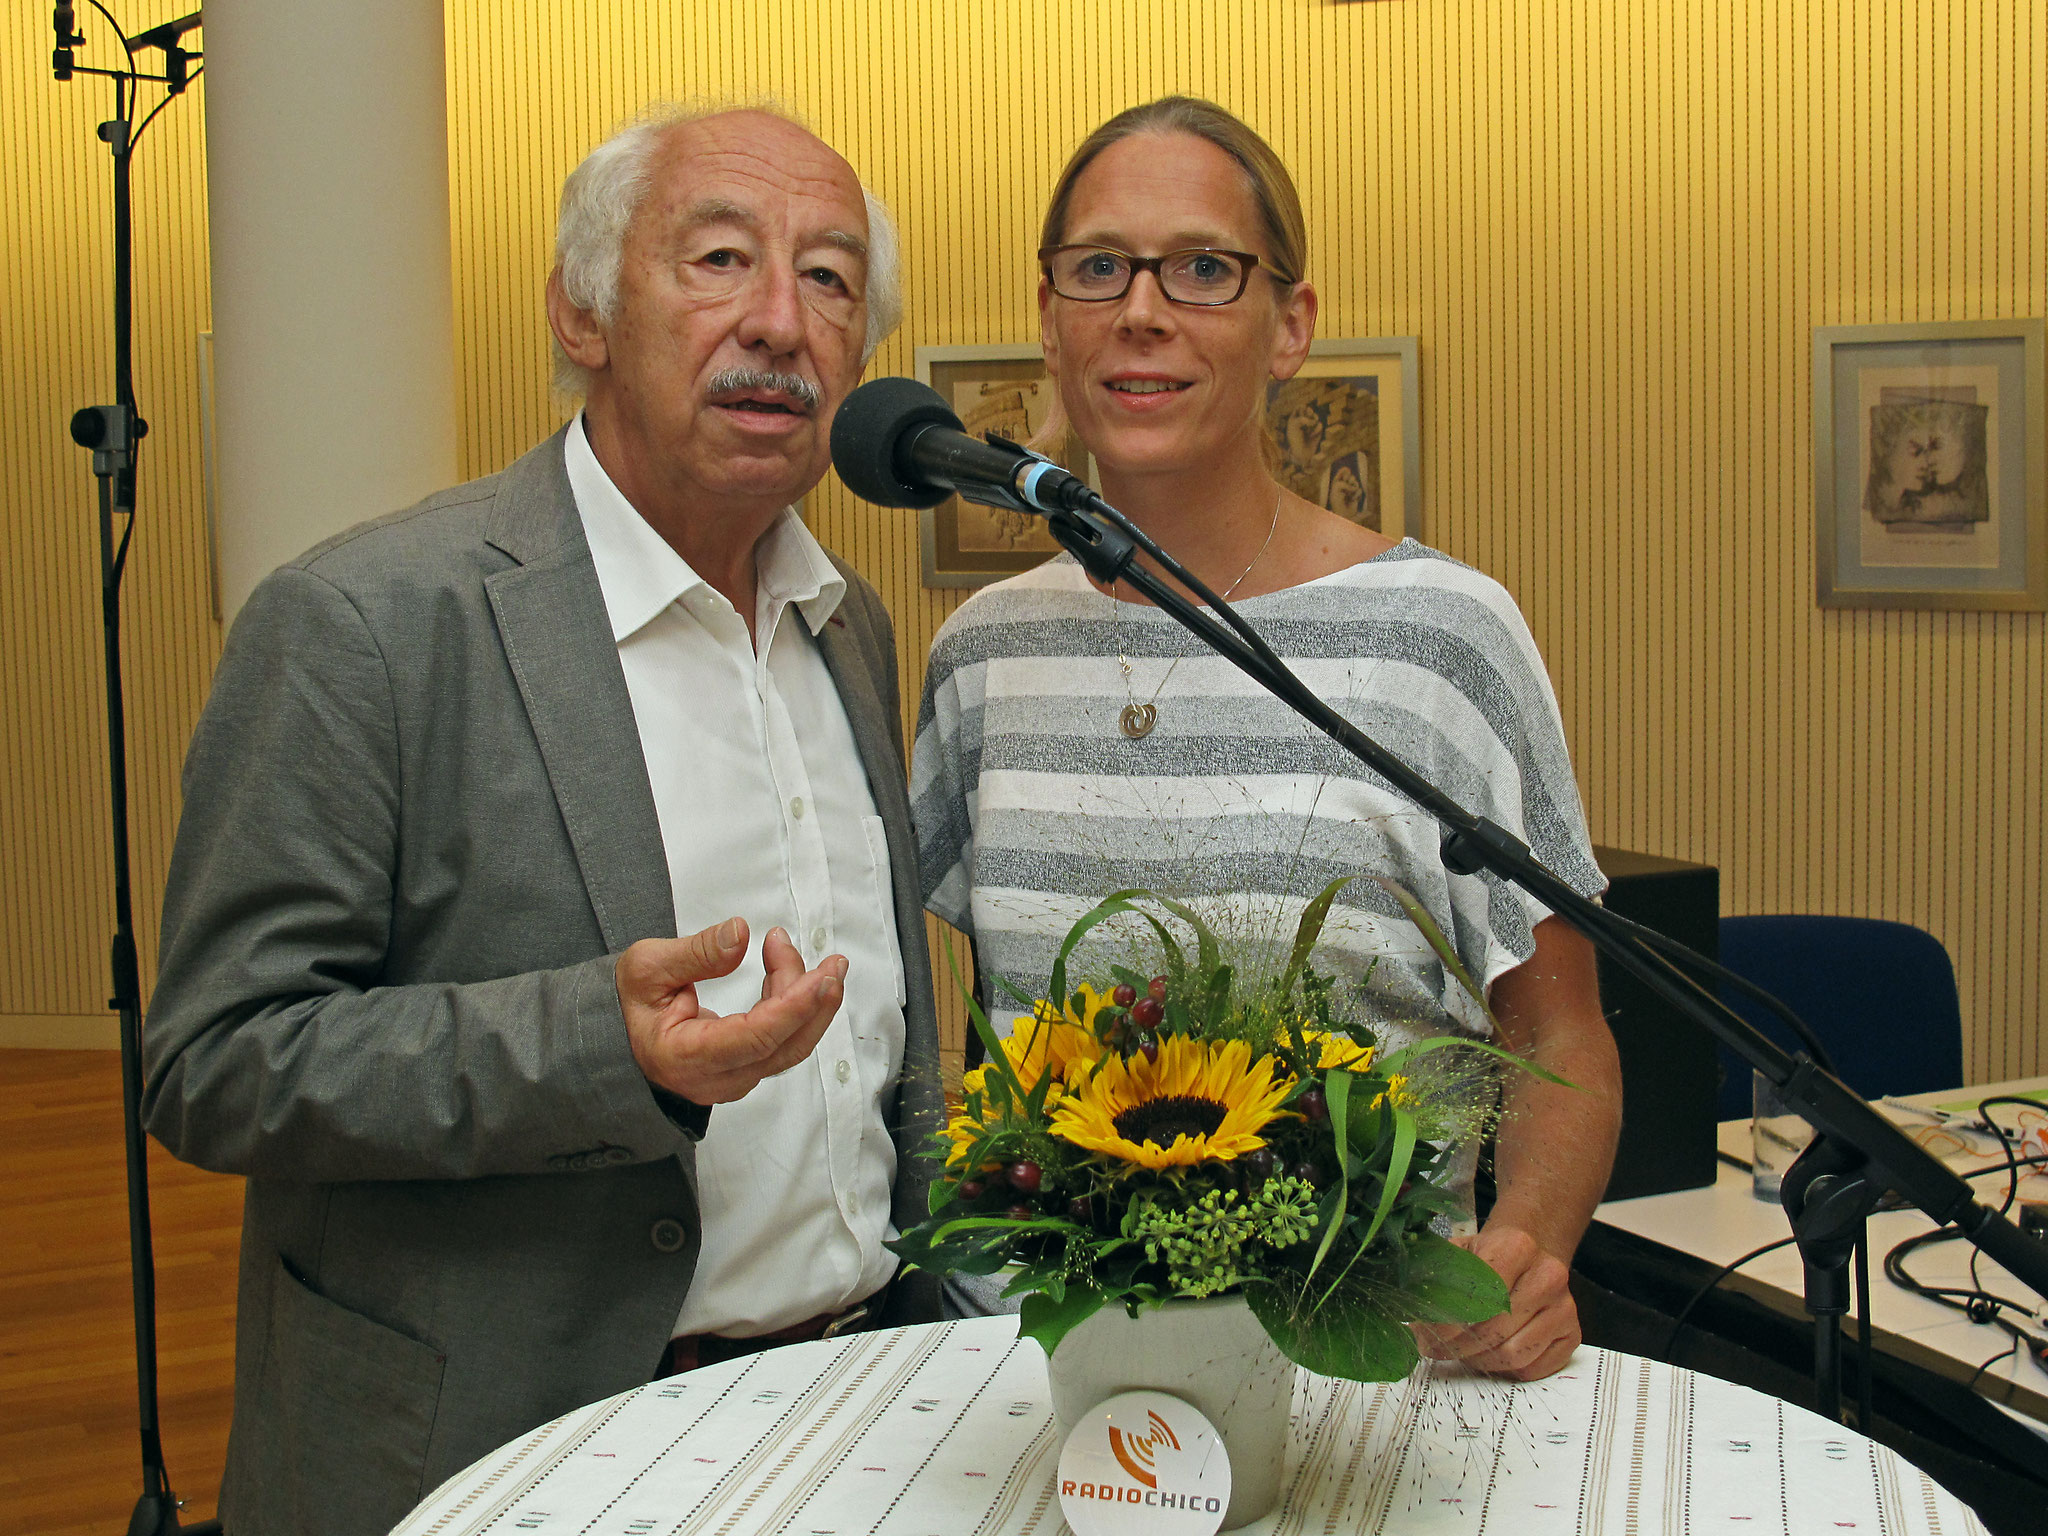 Corinne Wissing und Roland Jeanneret - 'I care for you'